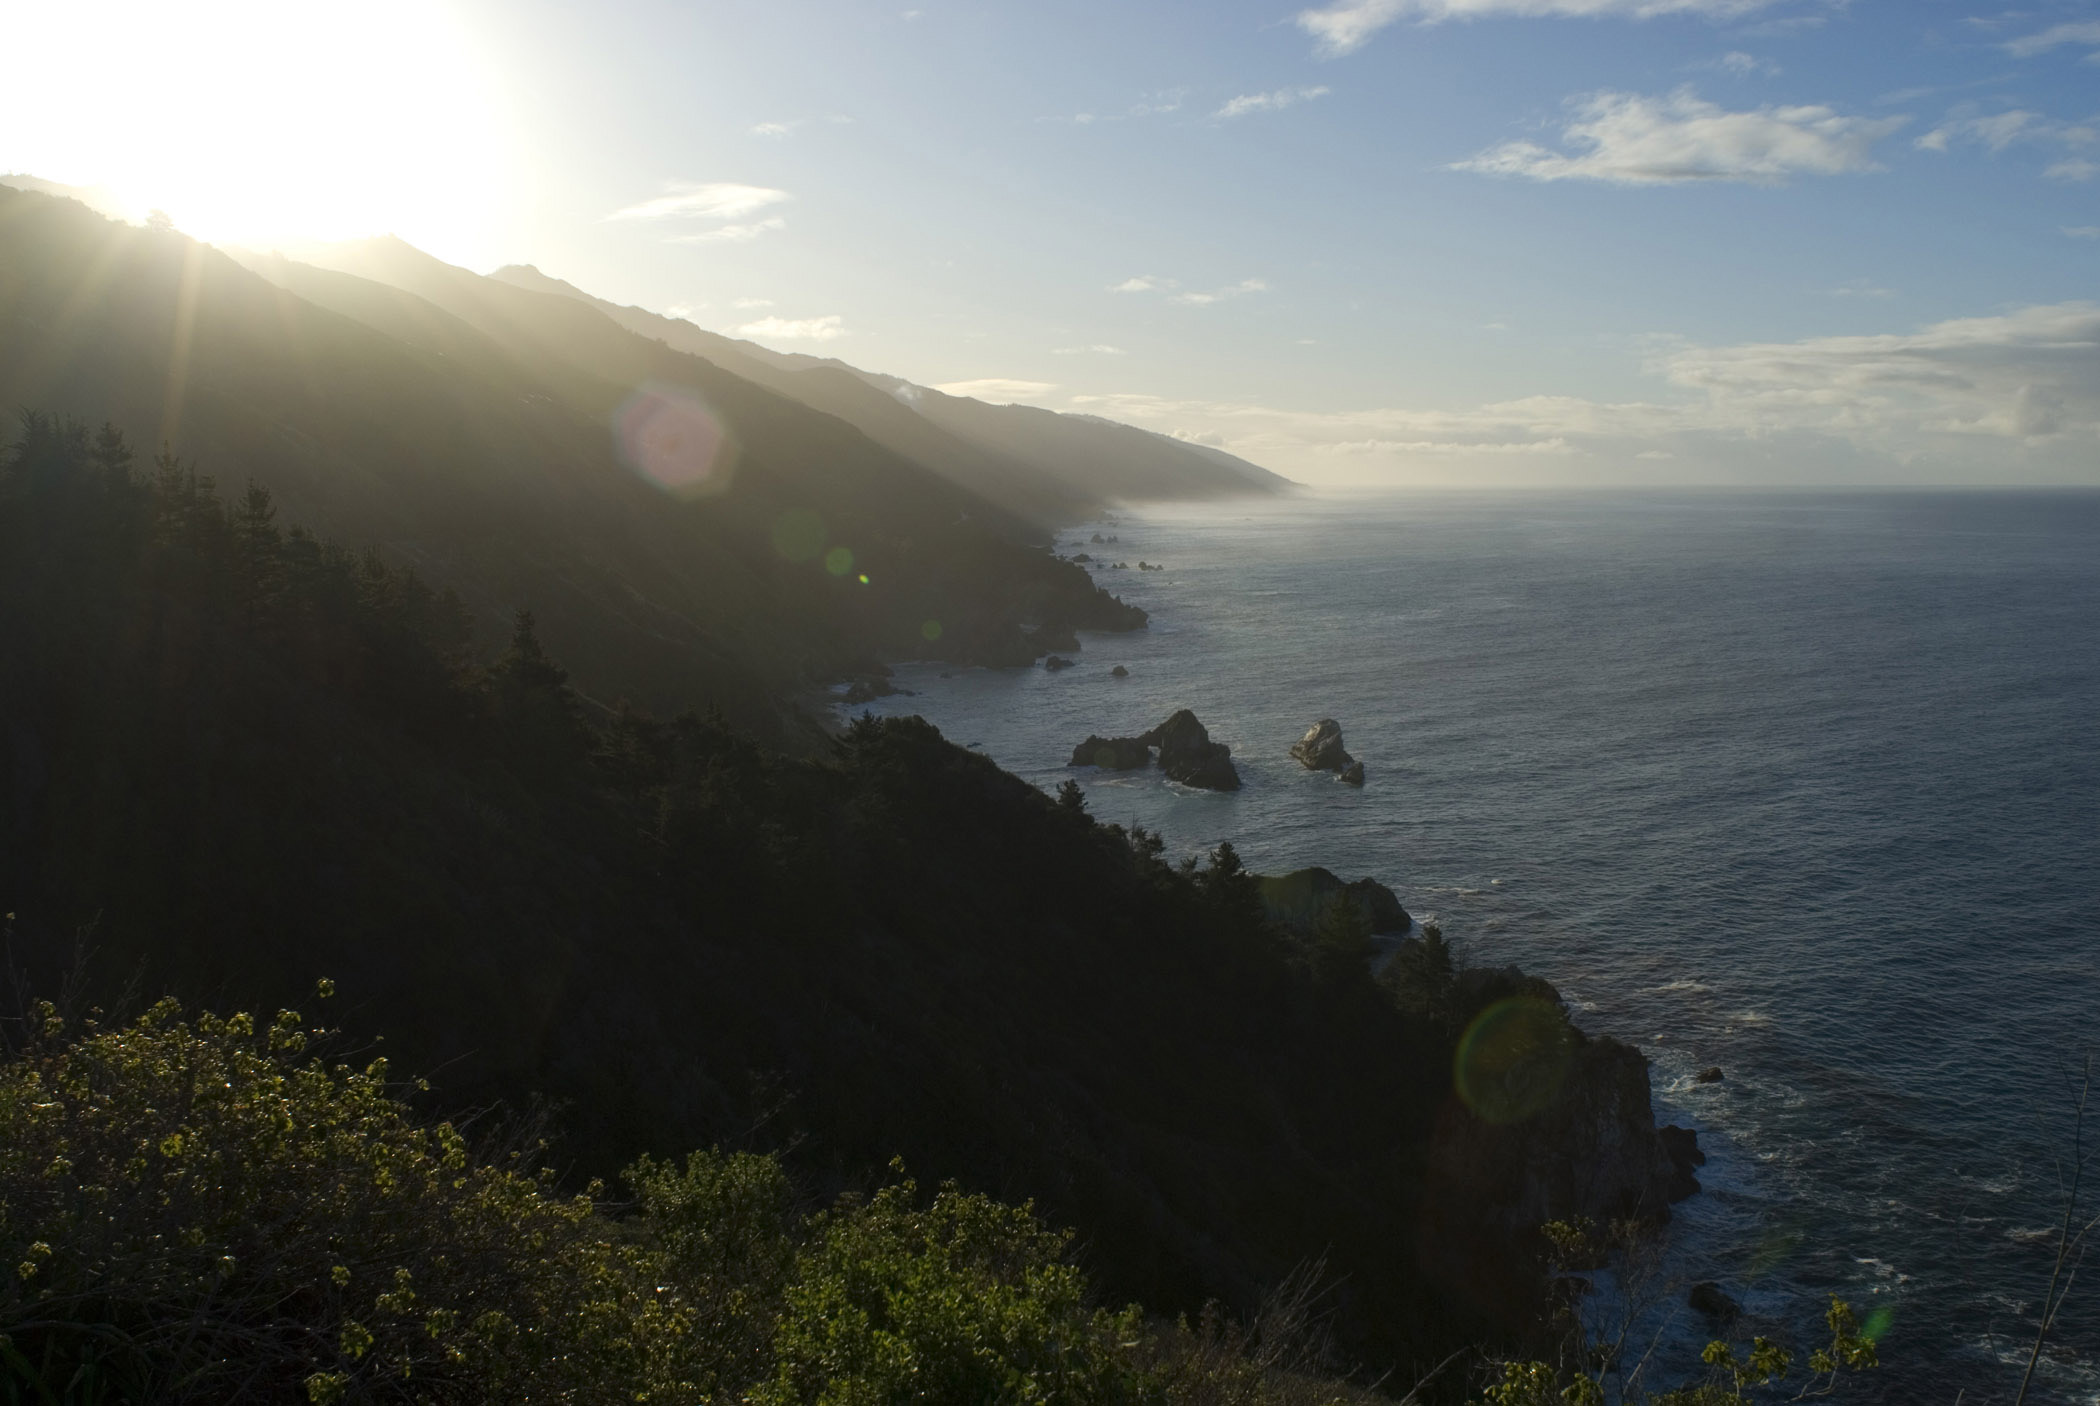 Relaxing Big Sur Coast Seascape on Sunrise. Captured in Aerial View